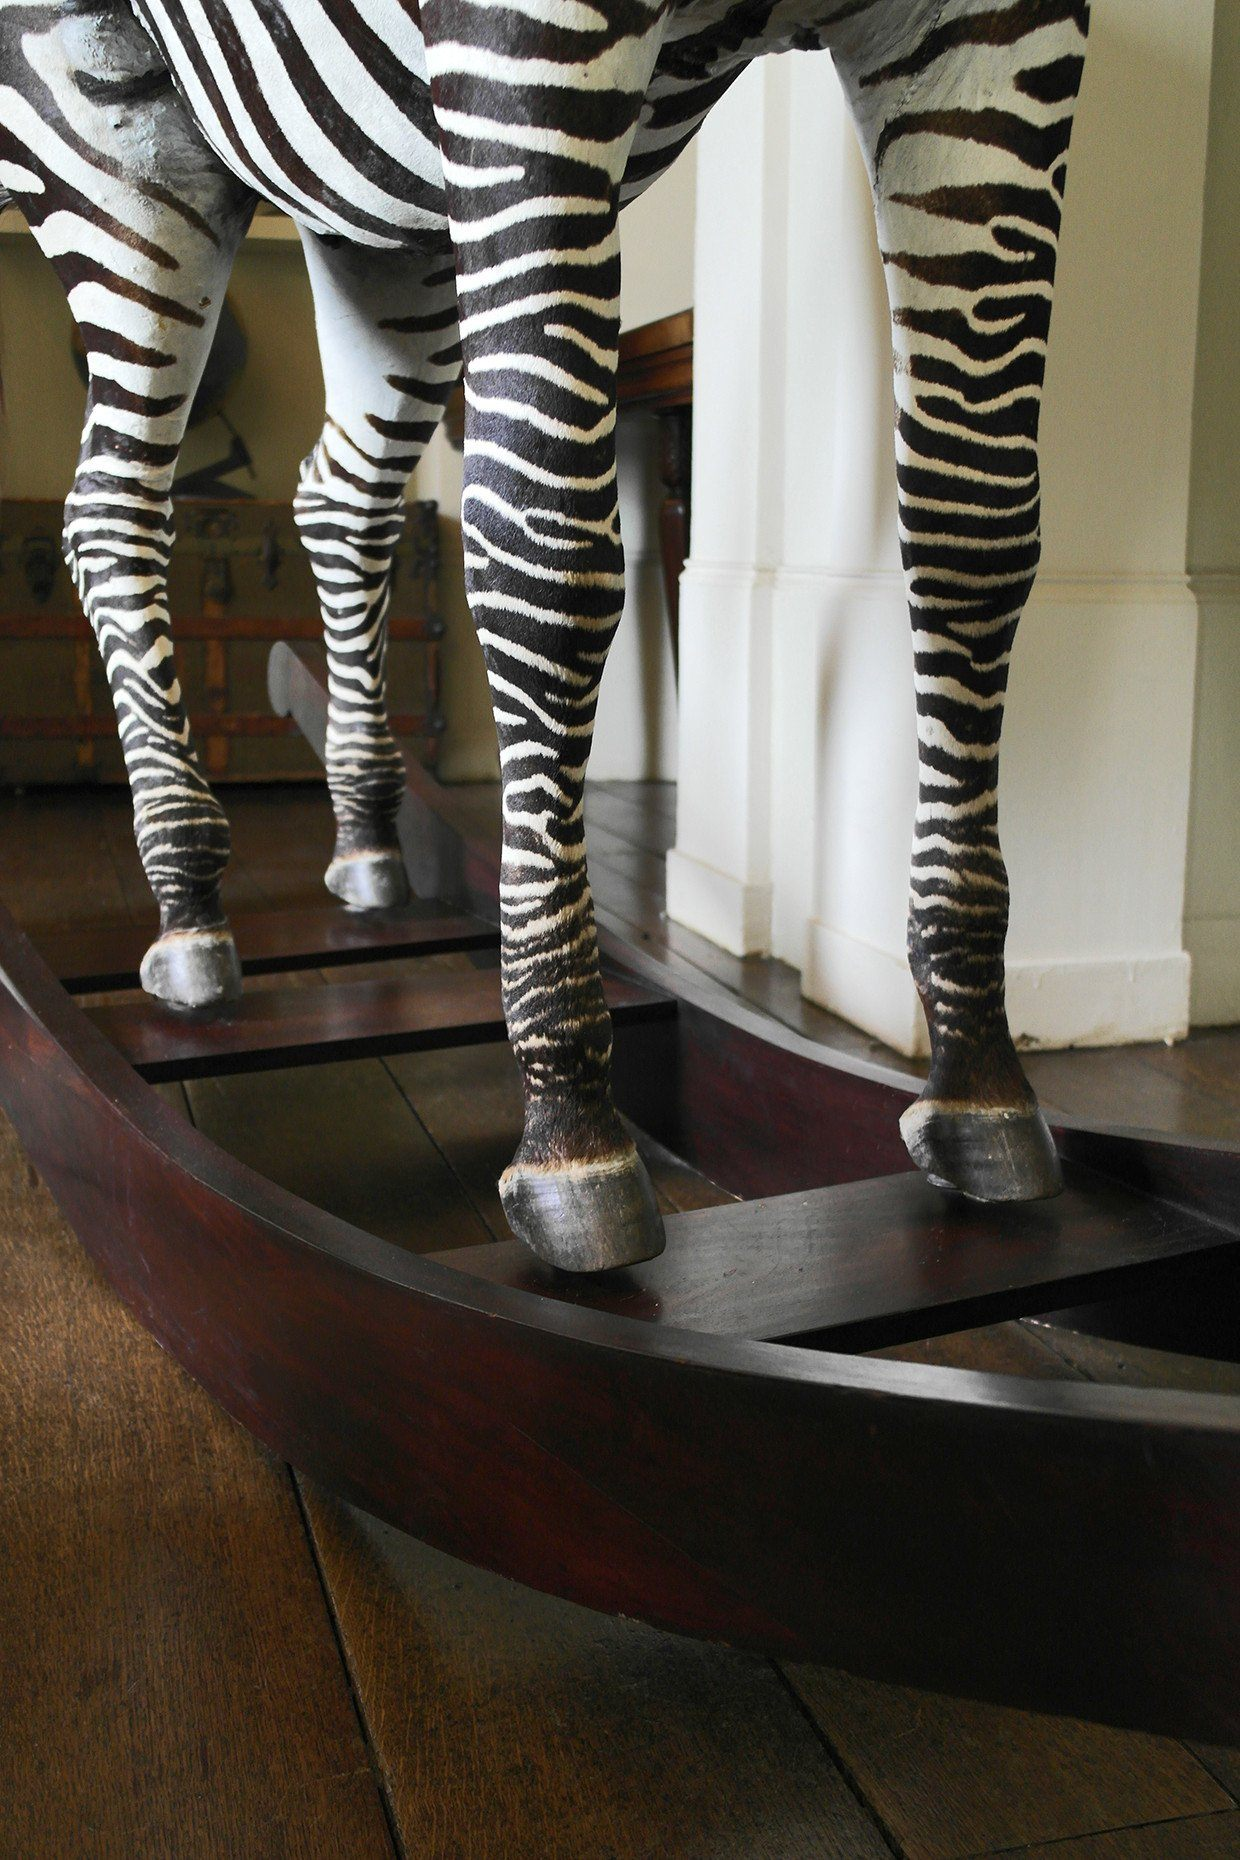 The Aynhoe Rocking Zebra by James Perkins Studio - A Modern Grand Tour